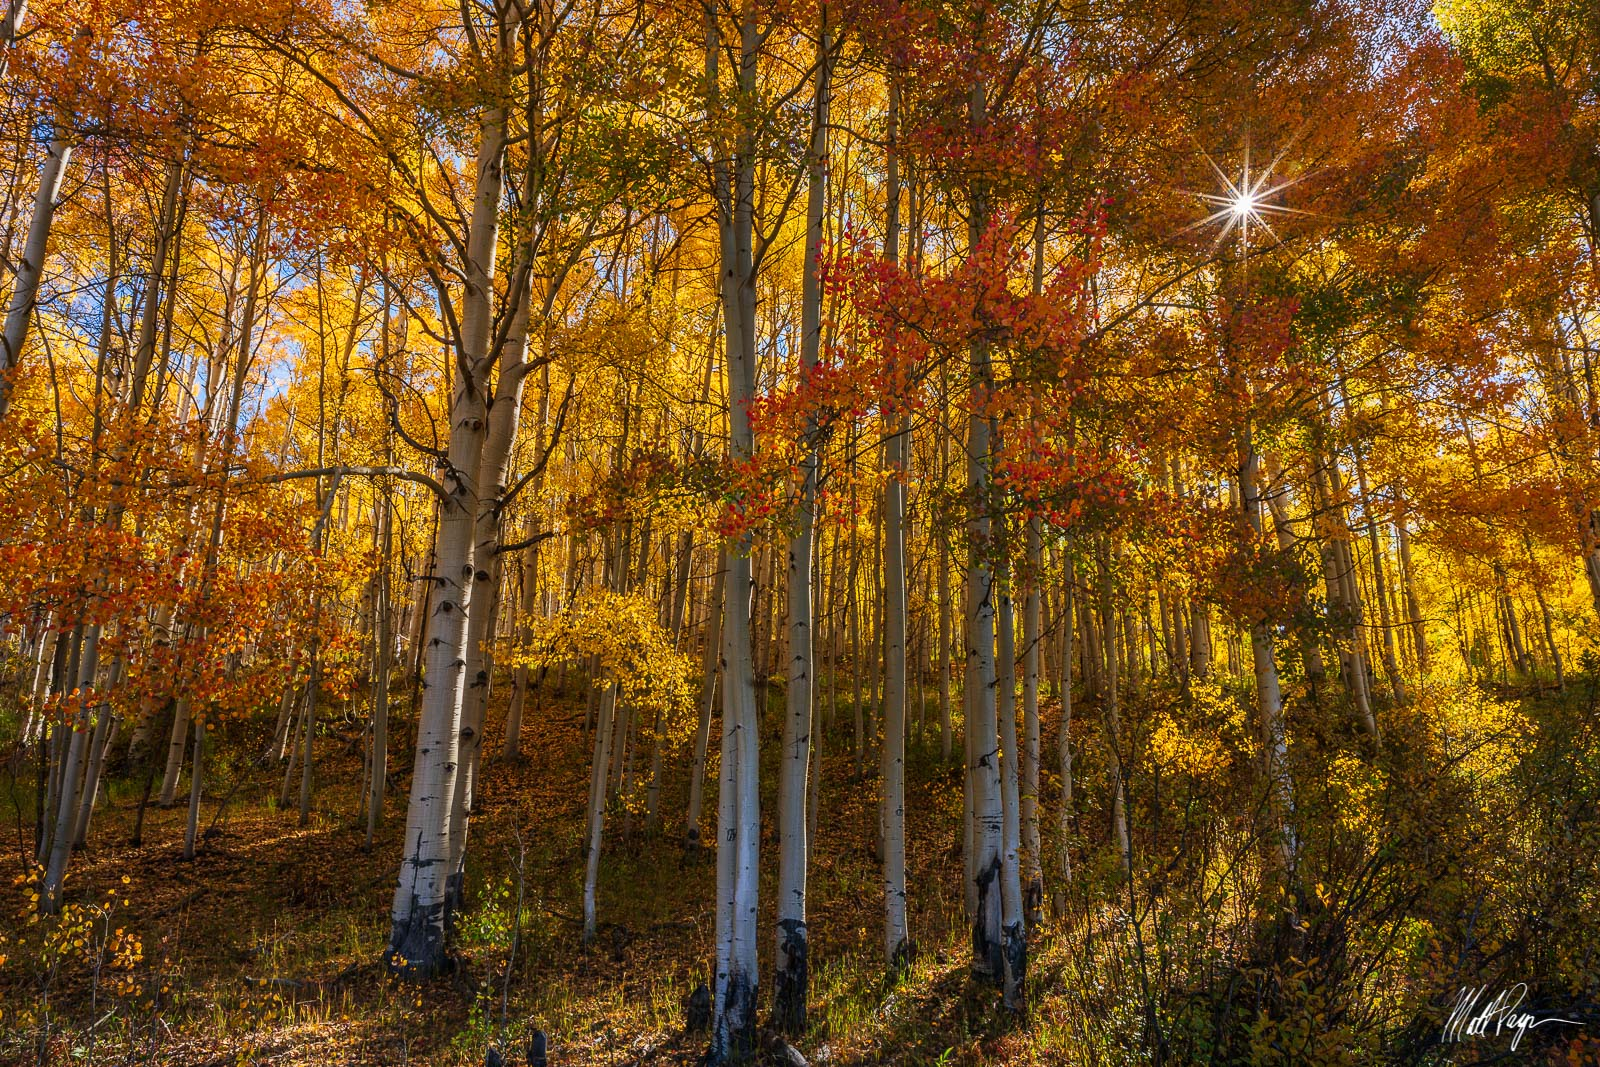 Aspen Trees, Autumn, Colorado, Crested Butte, Fall, Fall Colors, Forest, Gunnison, Landscape, Ohio Pass, Sunrise, Sunstar, Yellow, September, photo